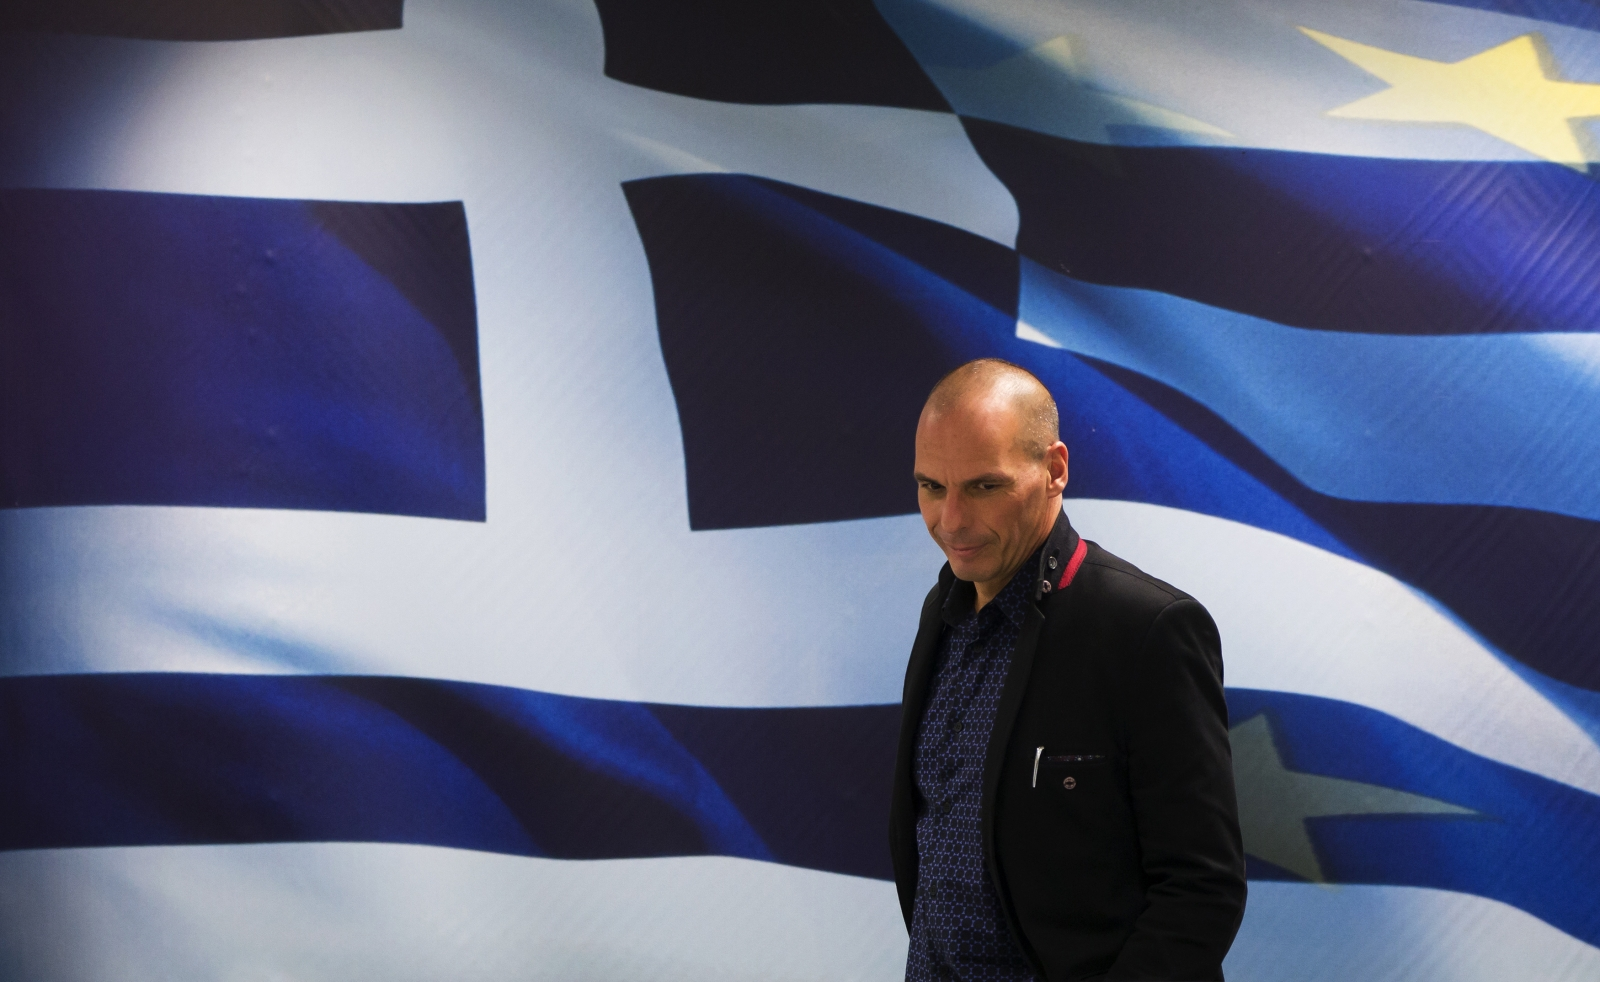 Newly appointed Greek Finance Minister Yanis Varoufakis arrives at a hand over ceremony in Athens, January 28, 2015.